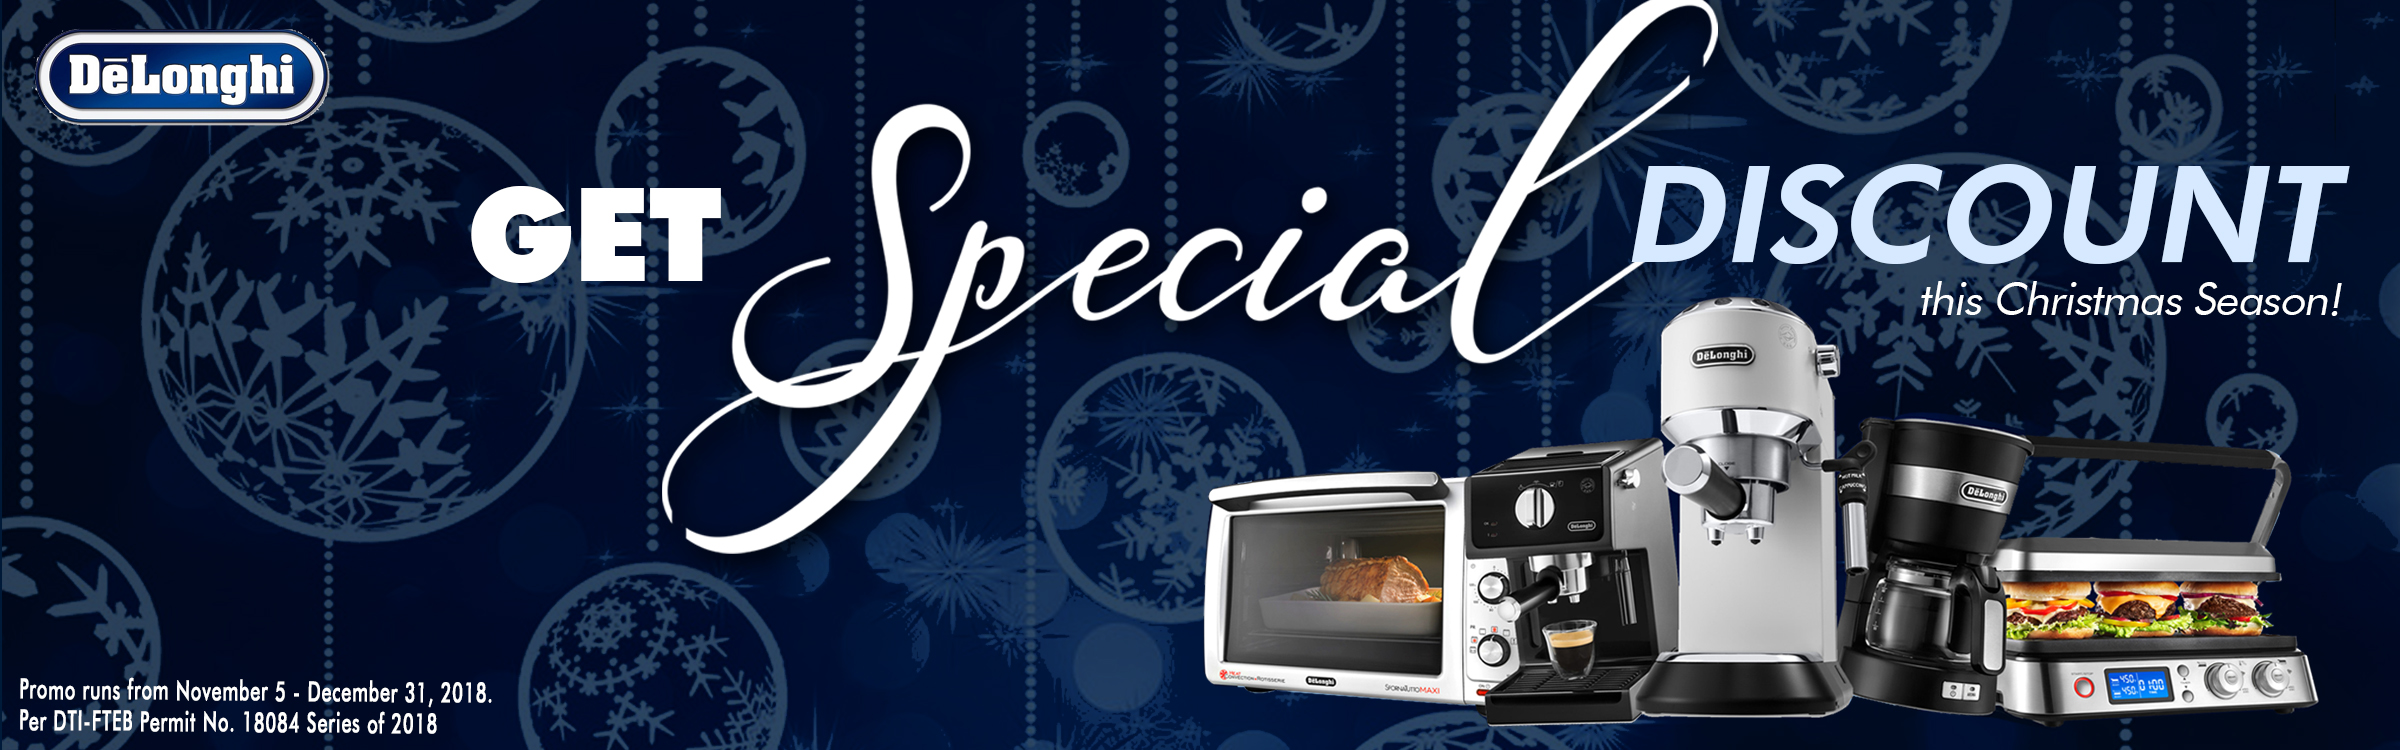 GET SPECIAL DISCOUNT THIS CHRISTMAS SEASON!